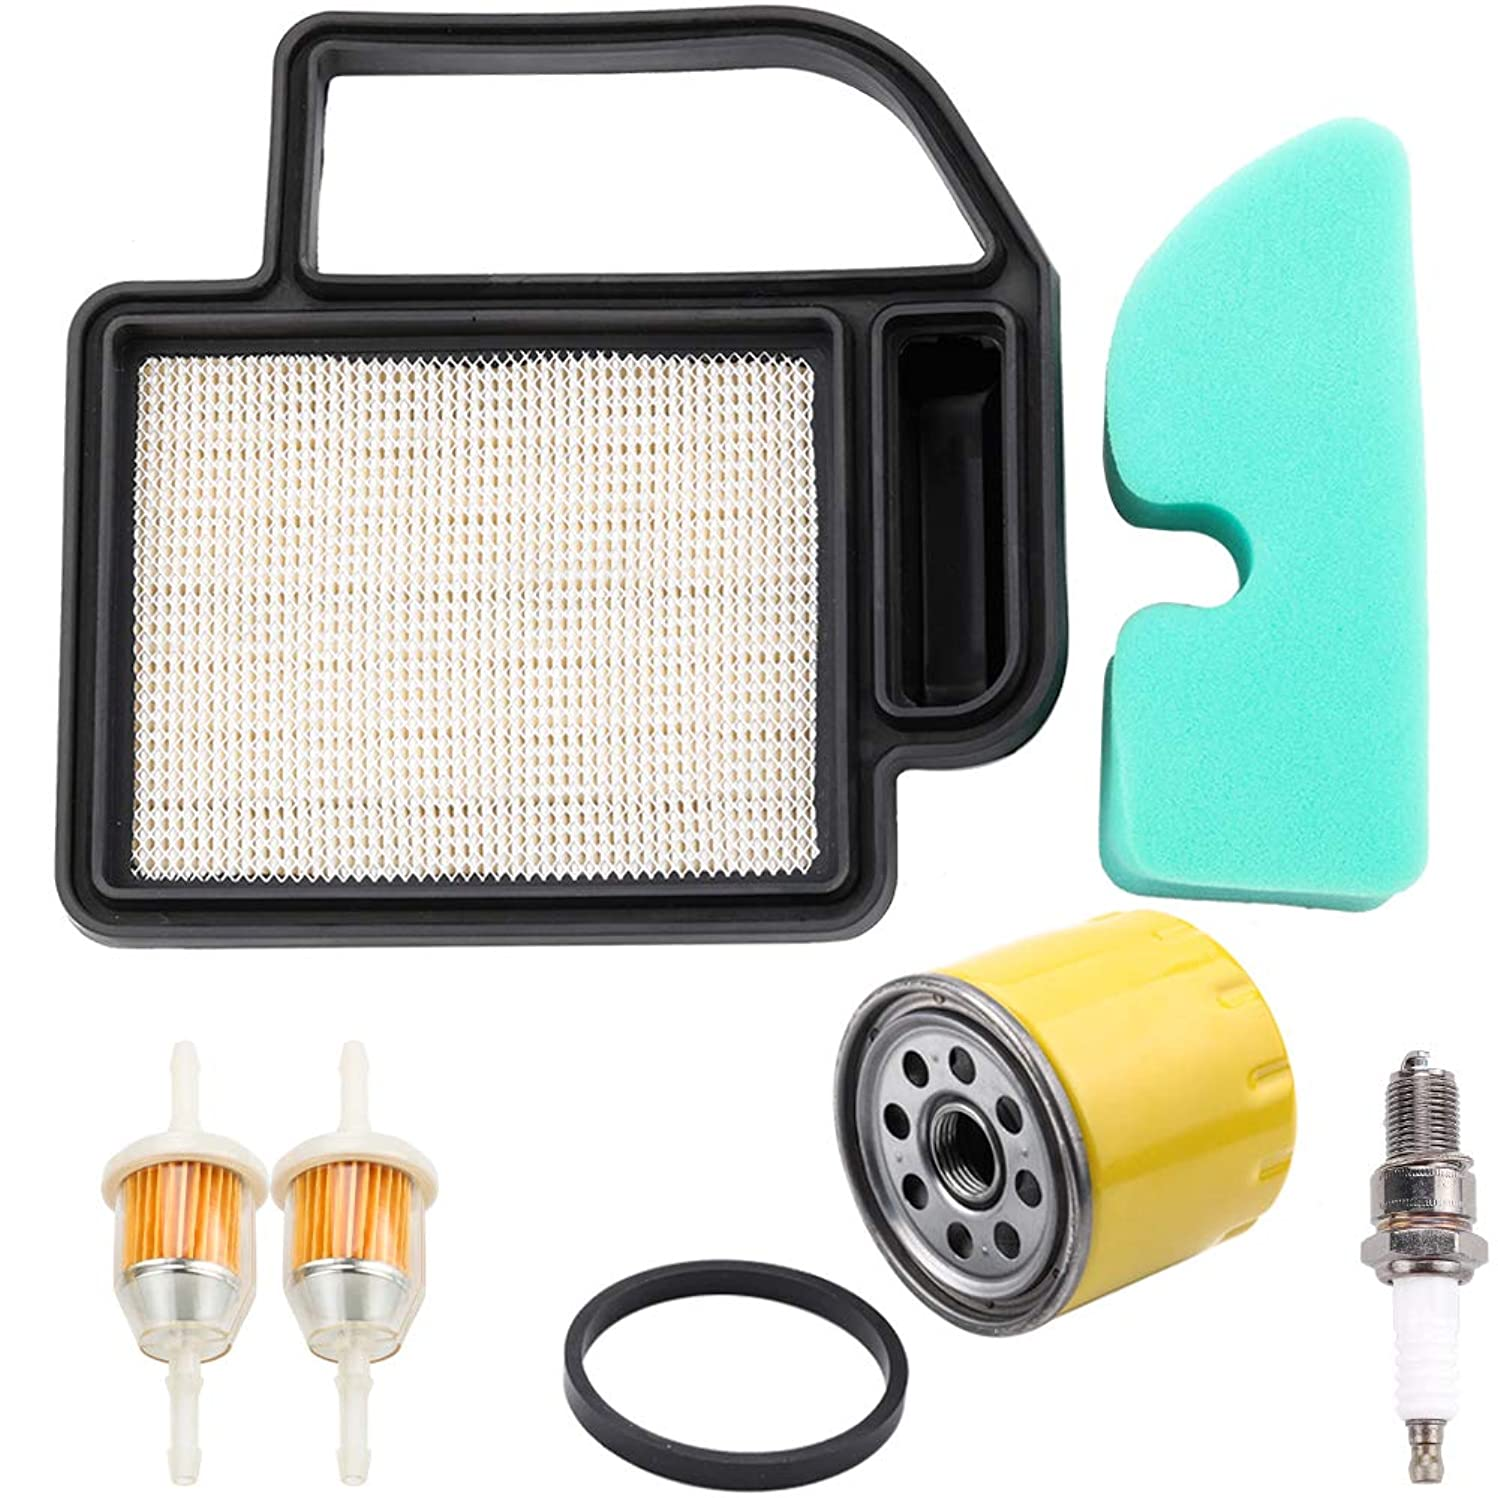 Dxent 20 083 02-S Air Pre Filter Fuel Filter Spark Plug Tune-Up Kit for Kohler SV470S SV480S SV530S SV540S SV590S SV620 15HP 16HP 17 HP 4 Cycle Courage Tractor Troy-Bilt 52 050 02-S Engine Lawn Mower